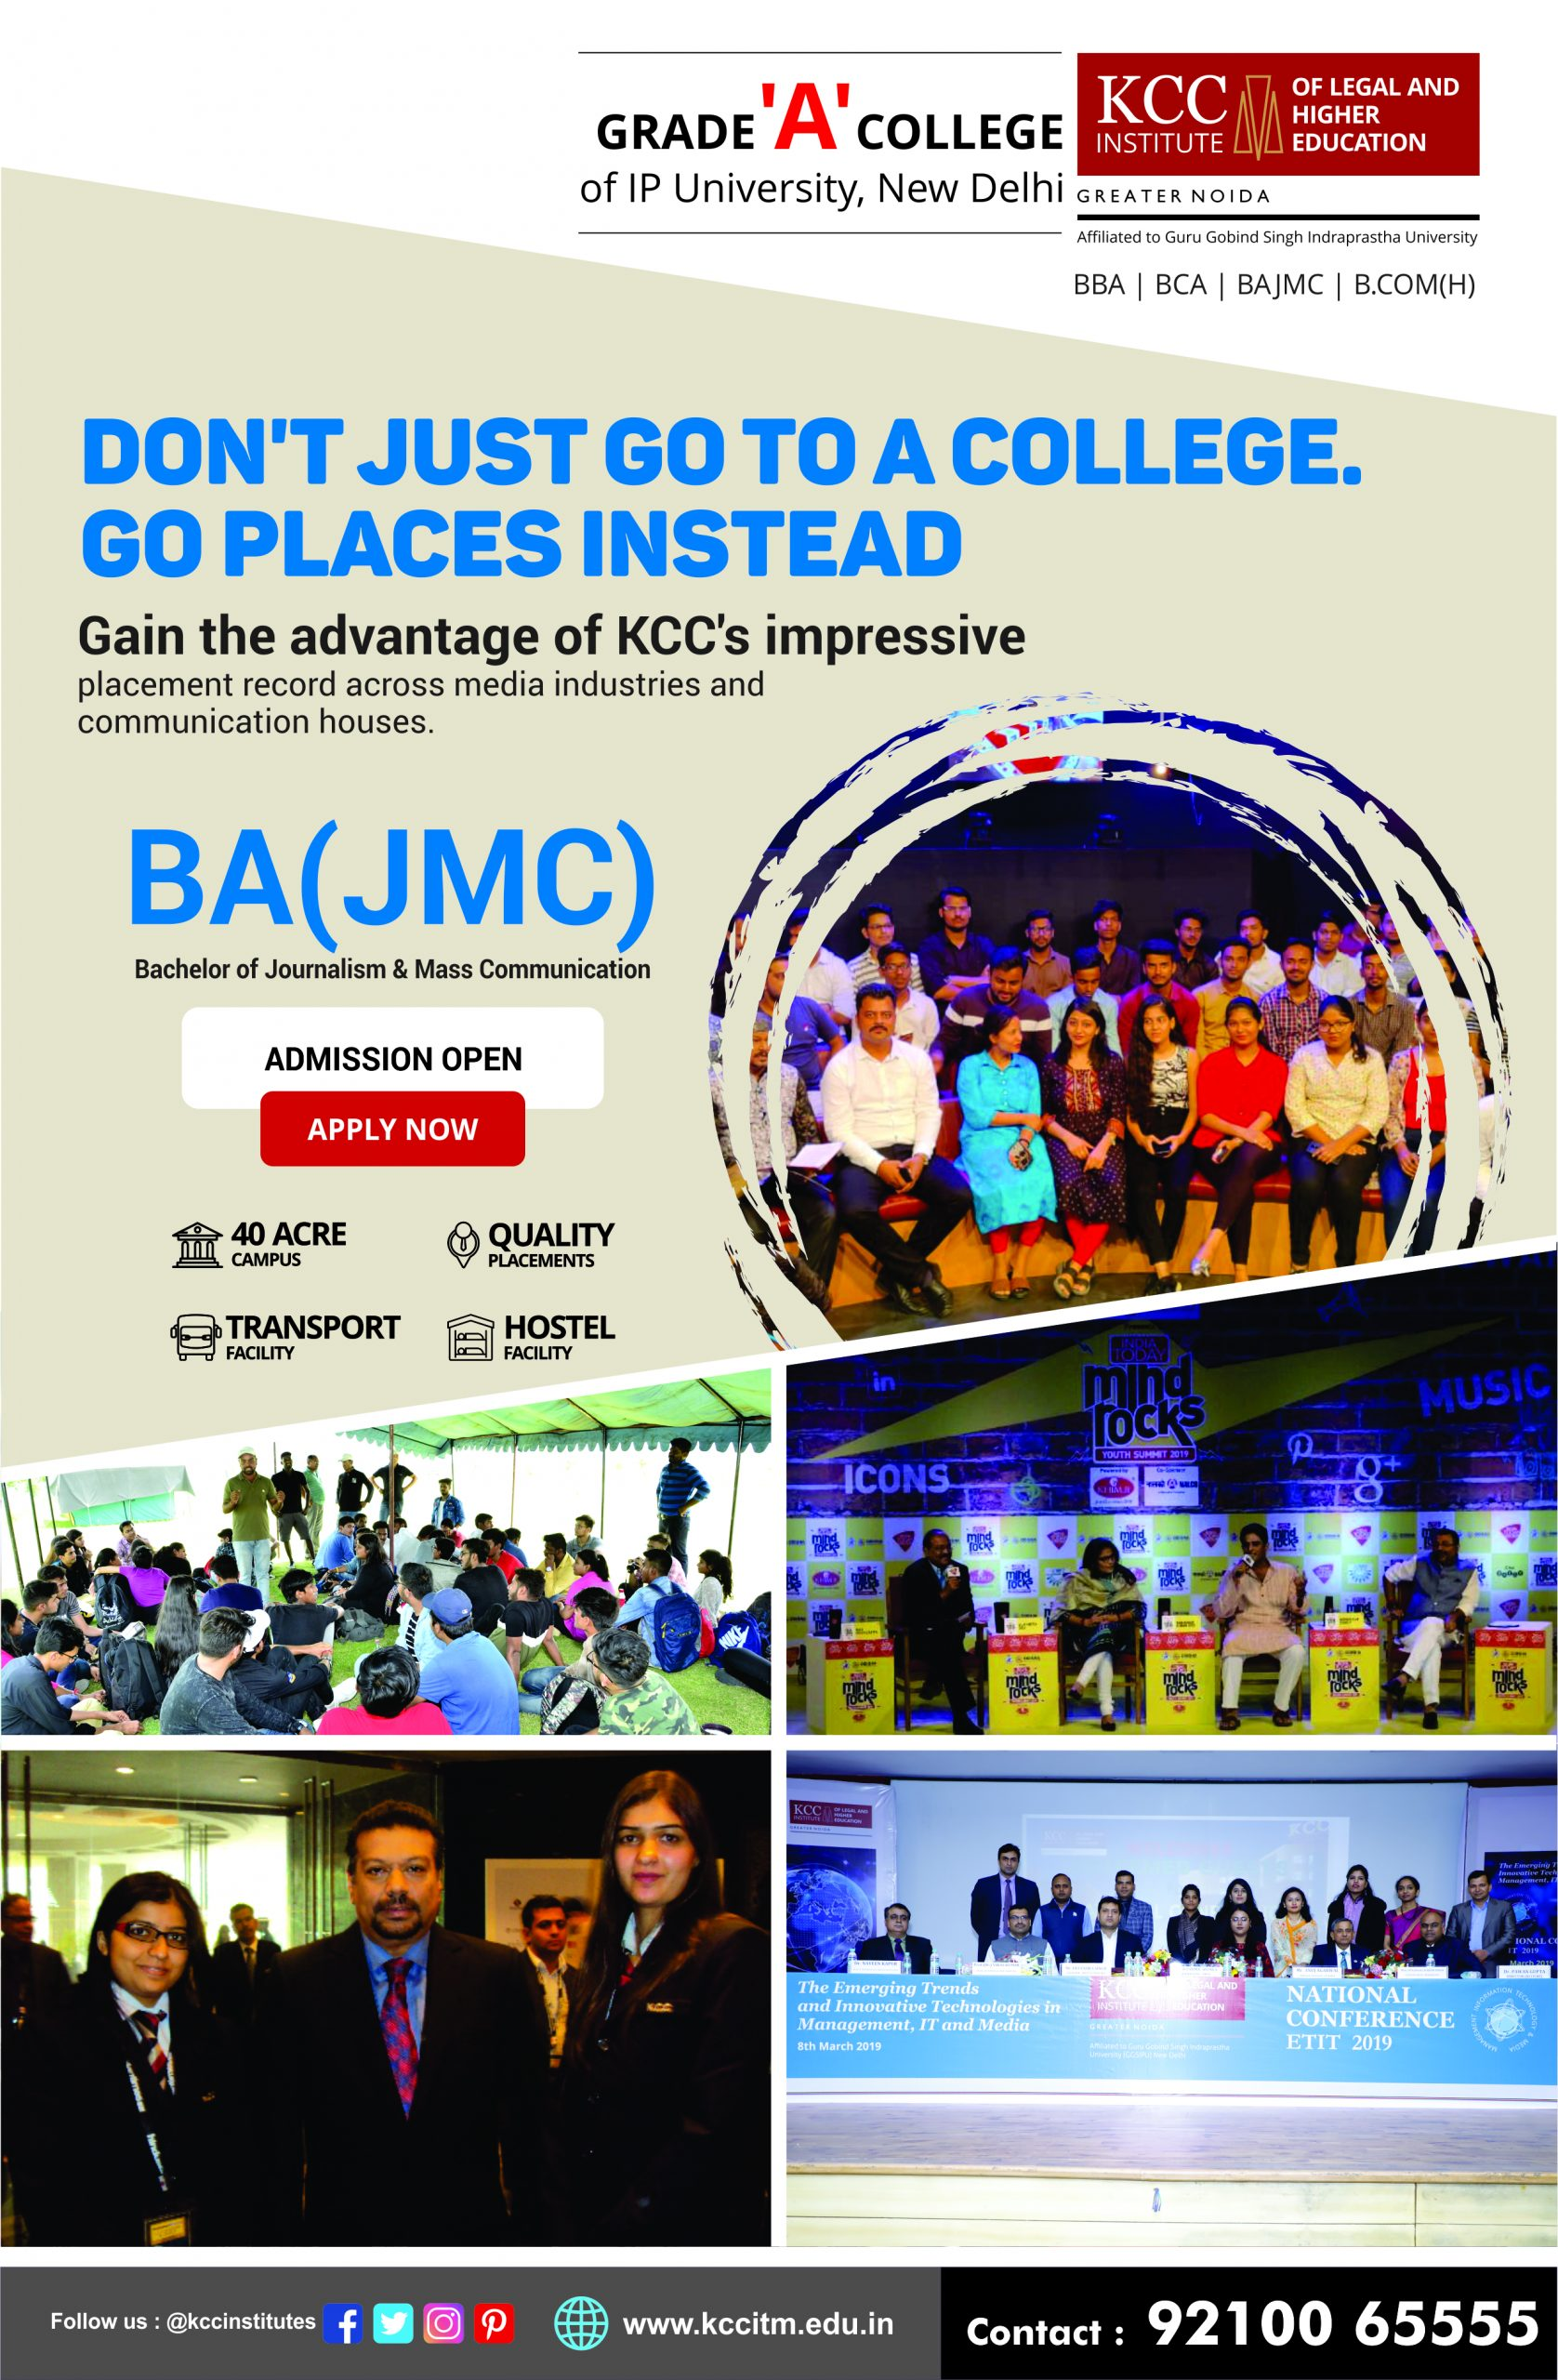 BJMC College in GGSIPU